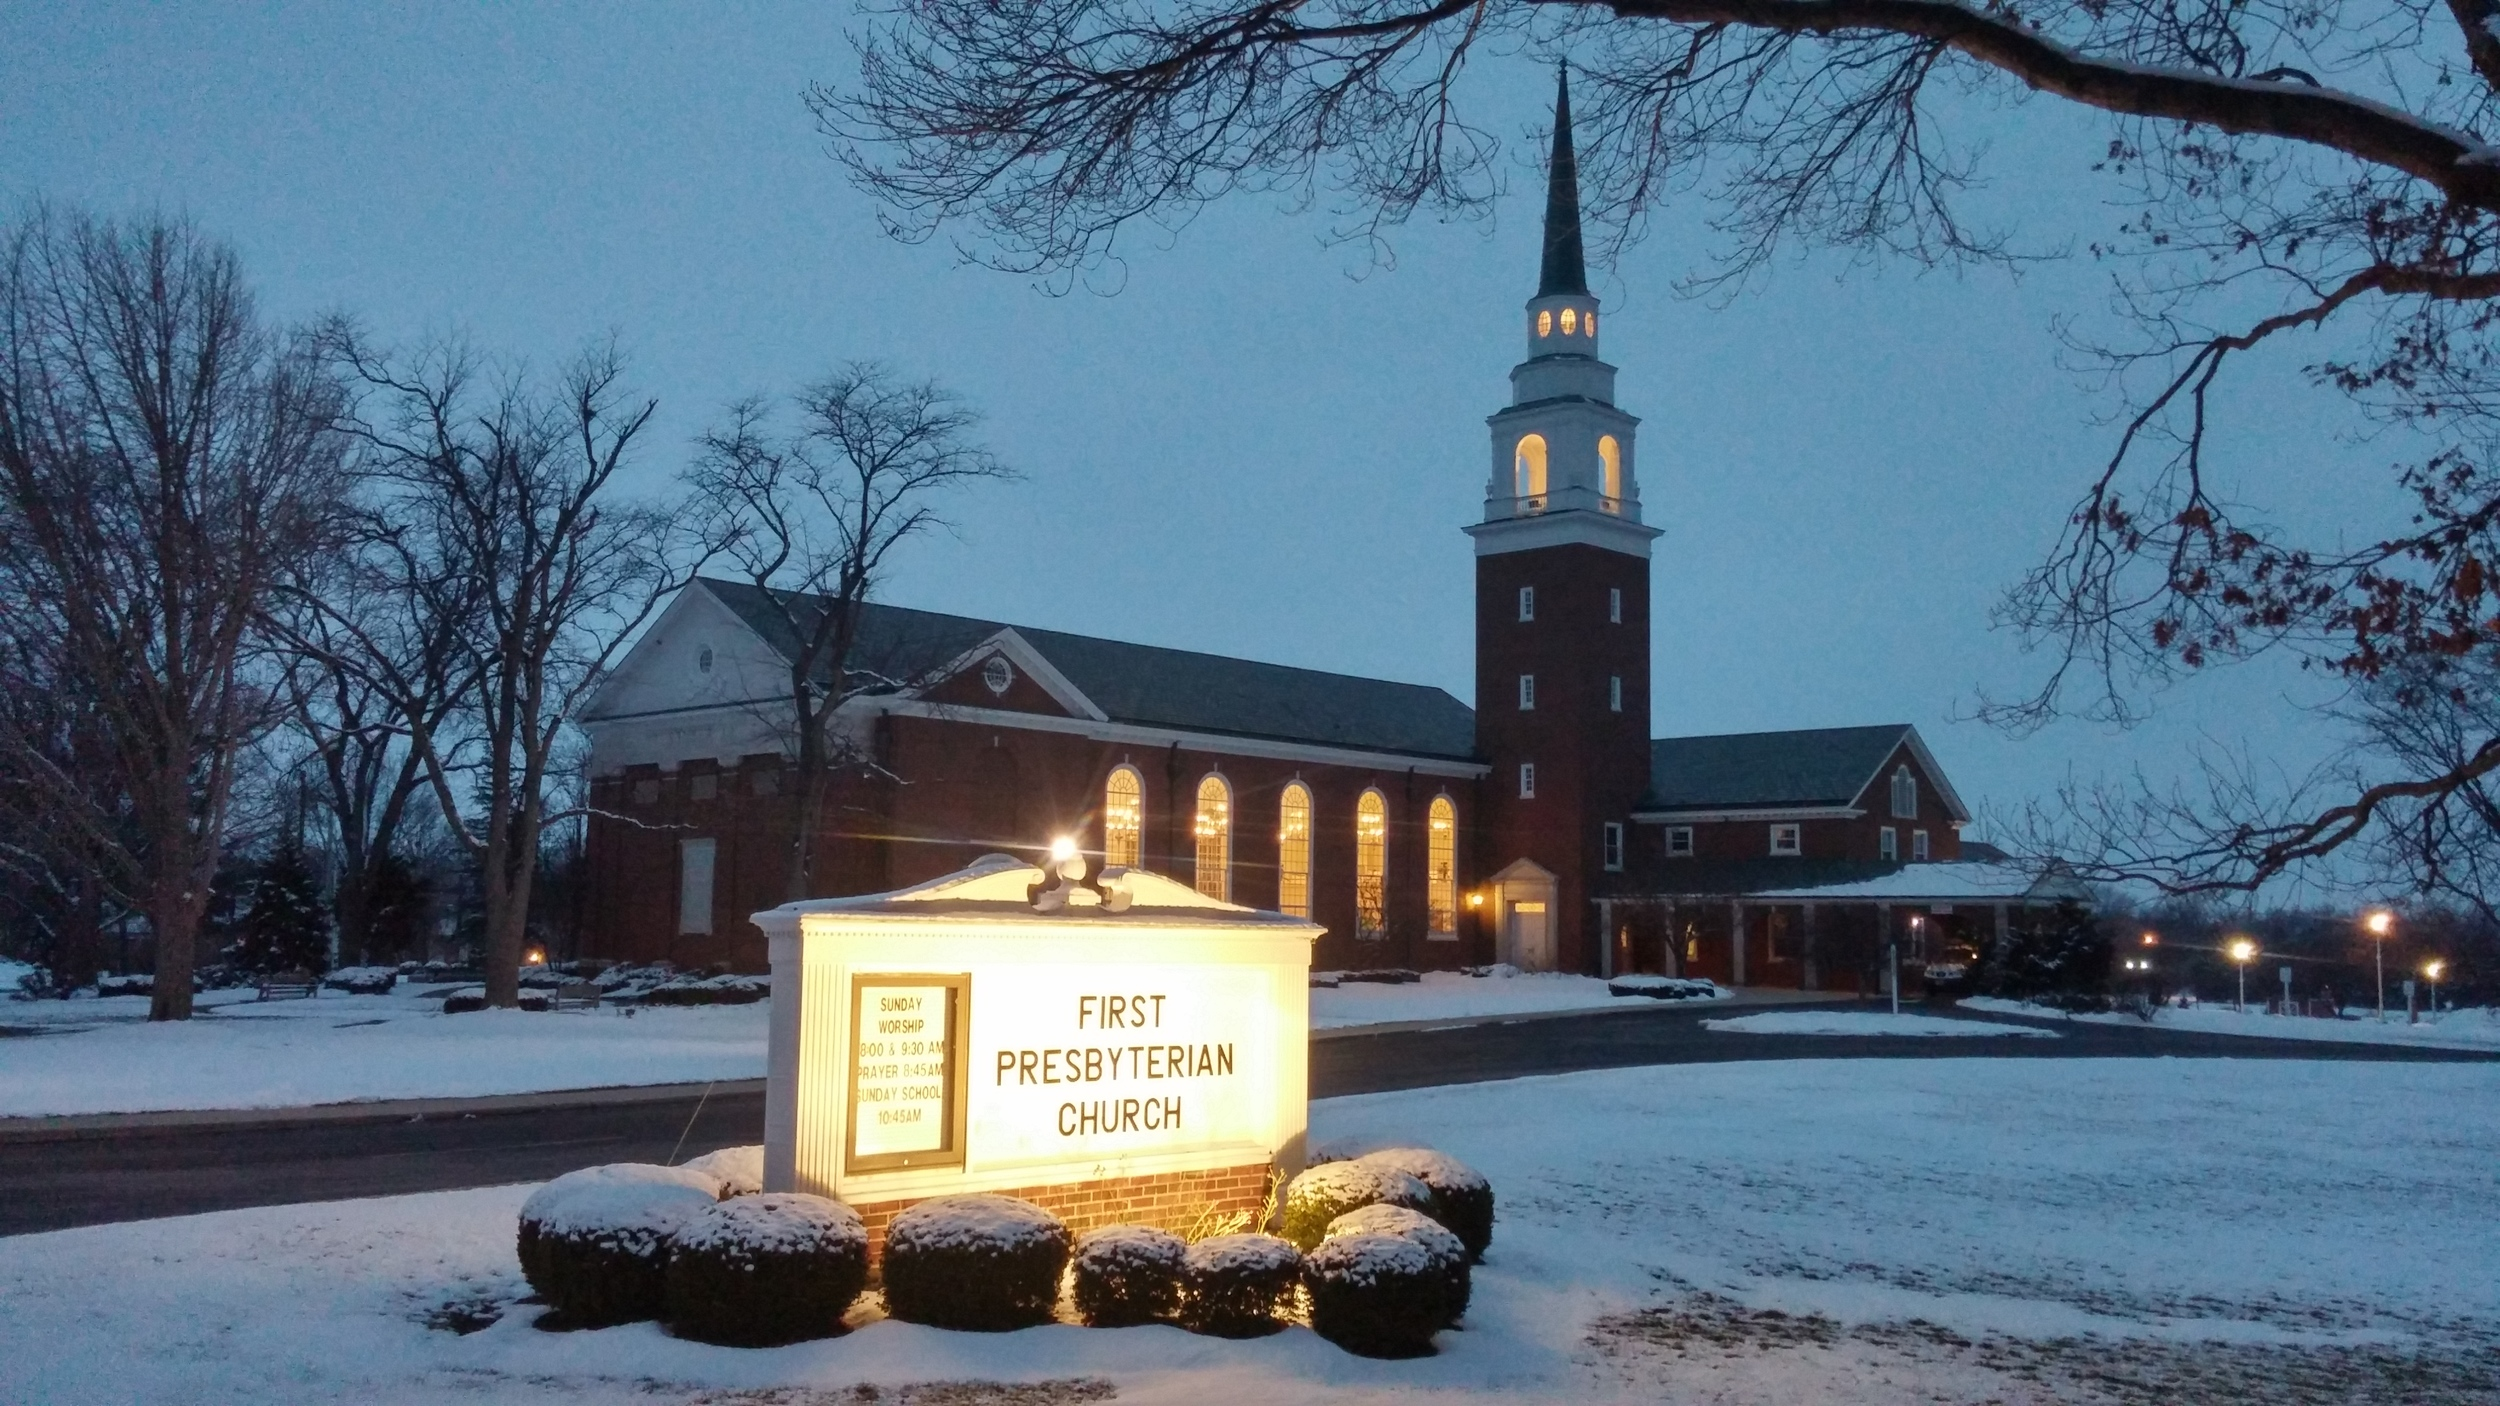 The First Presbyterian Church of Findlay Ohio is the new home to a Chime Master Millennium electronic carillon.